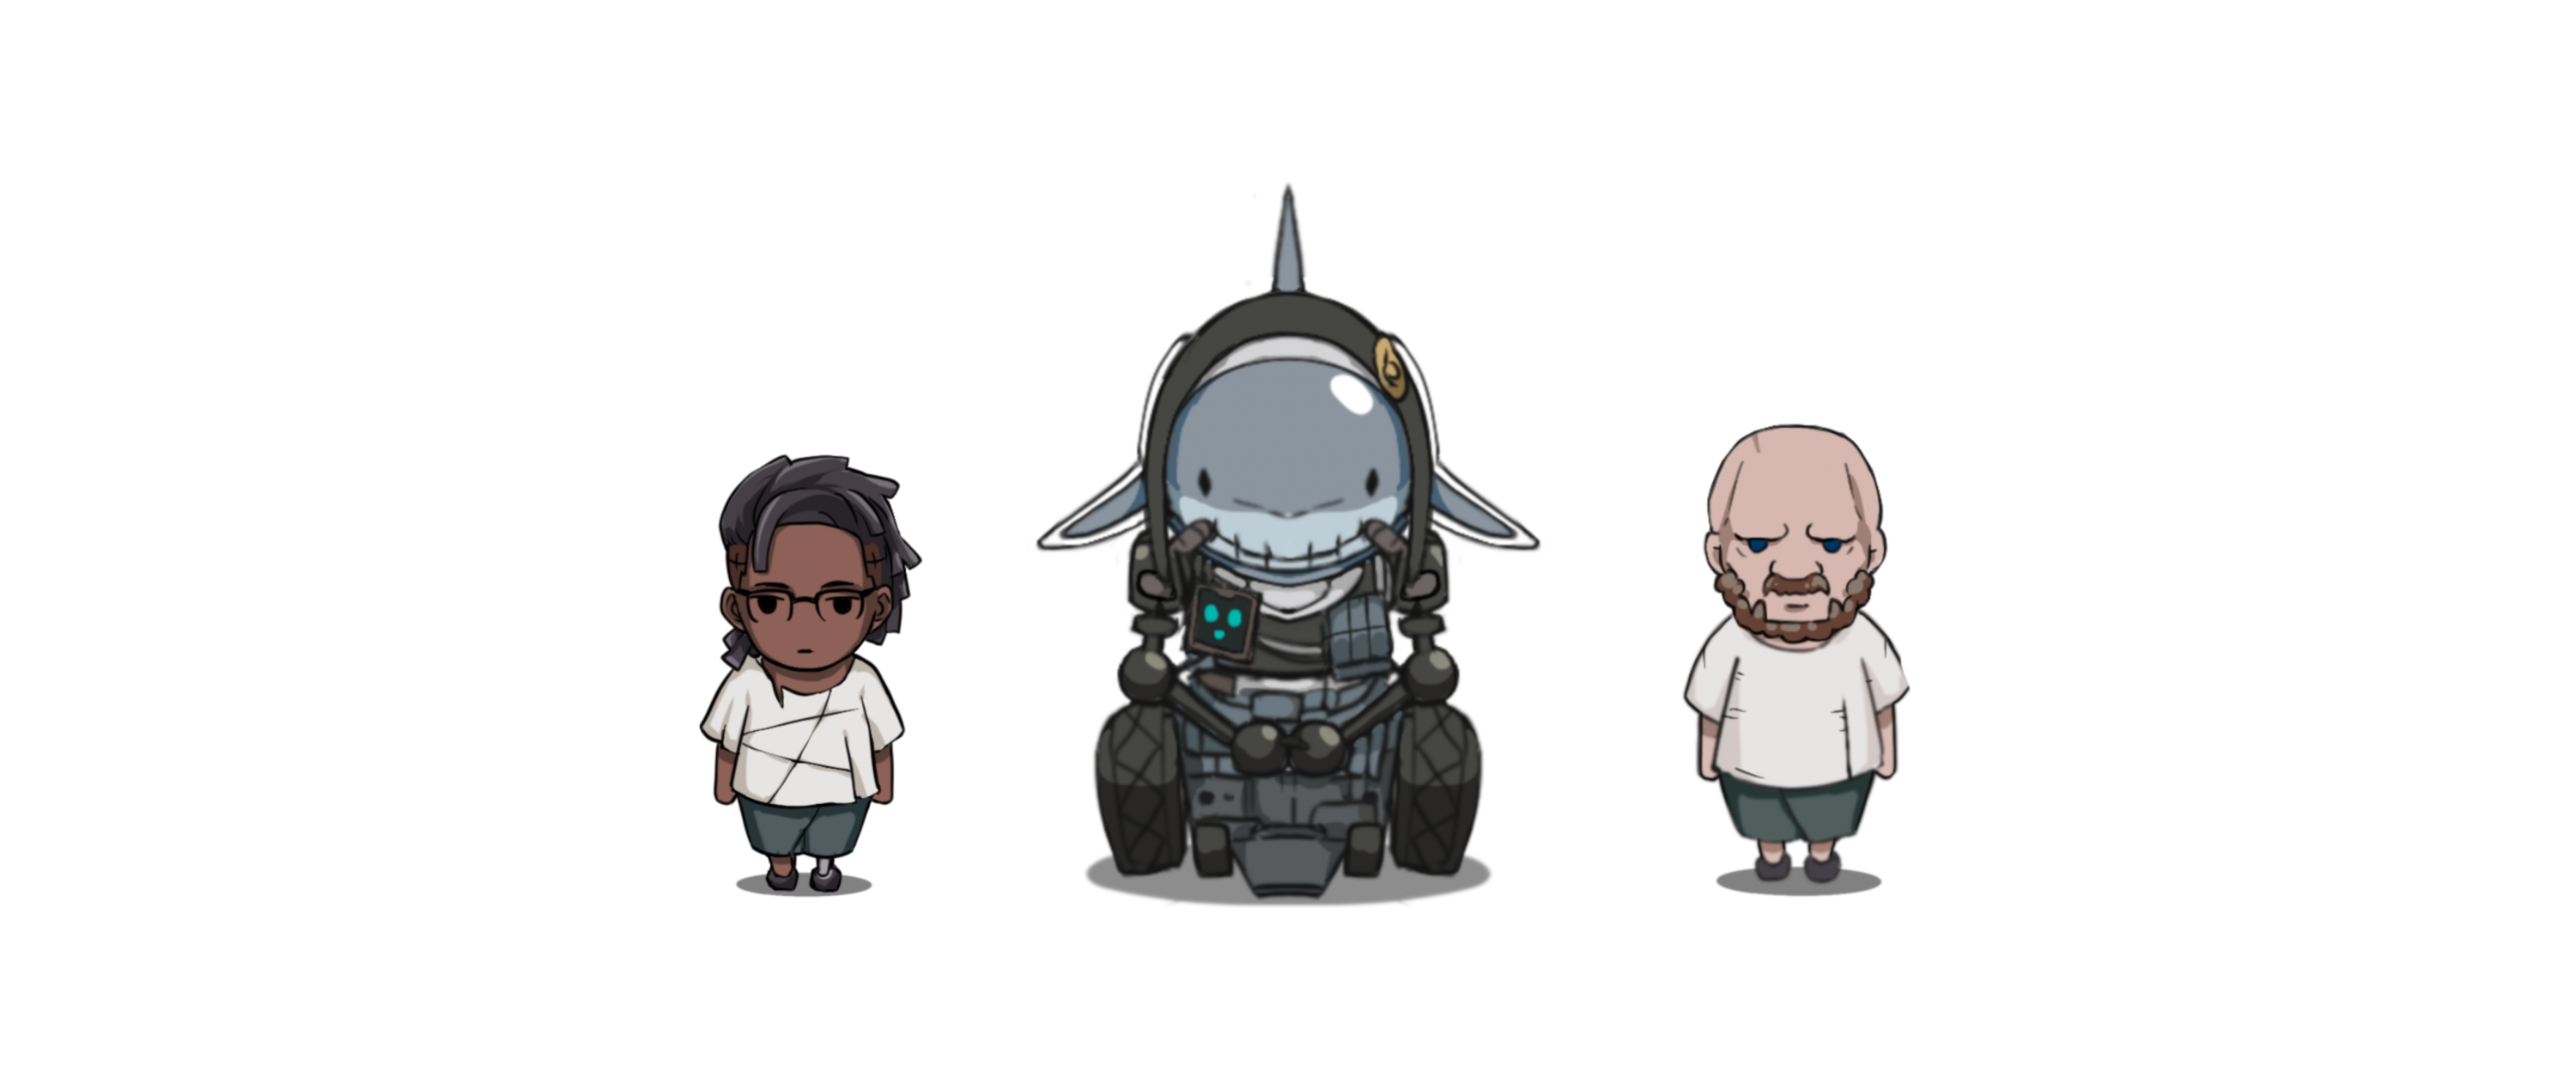 The in game walking sprites for the main characters. From left to right are Ty, Felicia and Jacob.